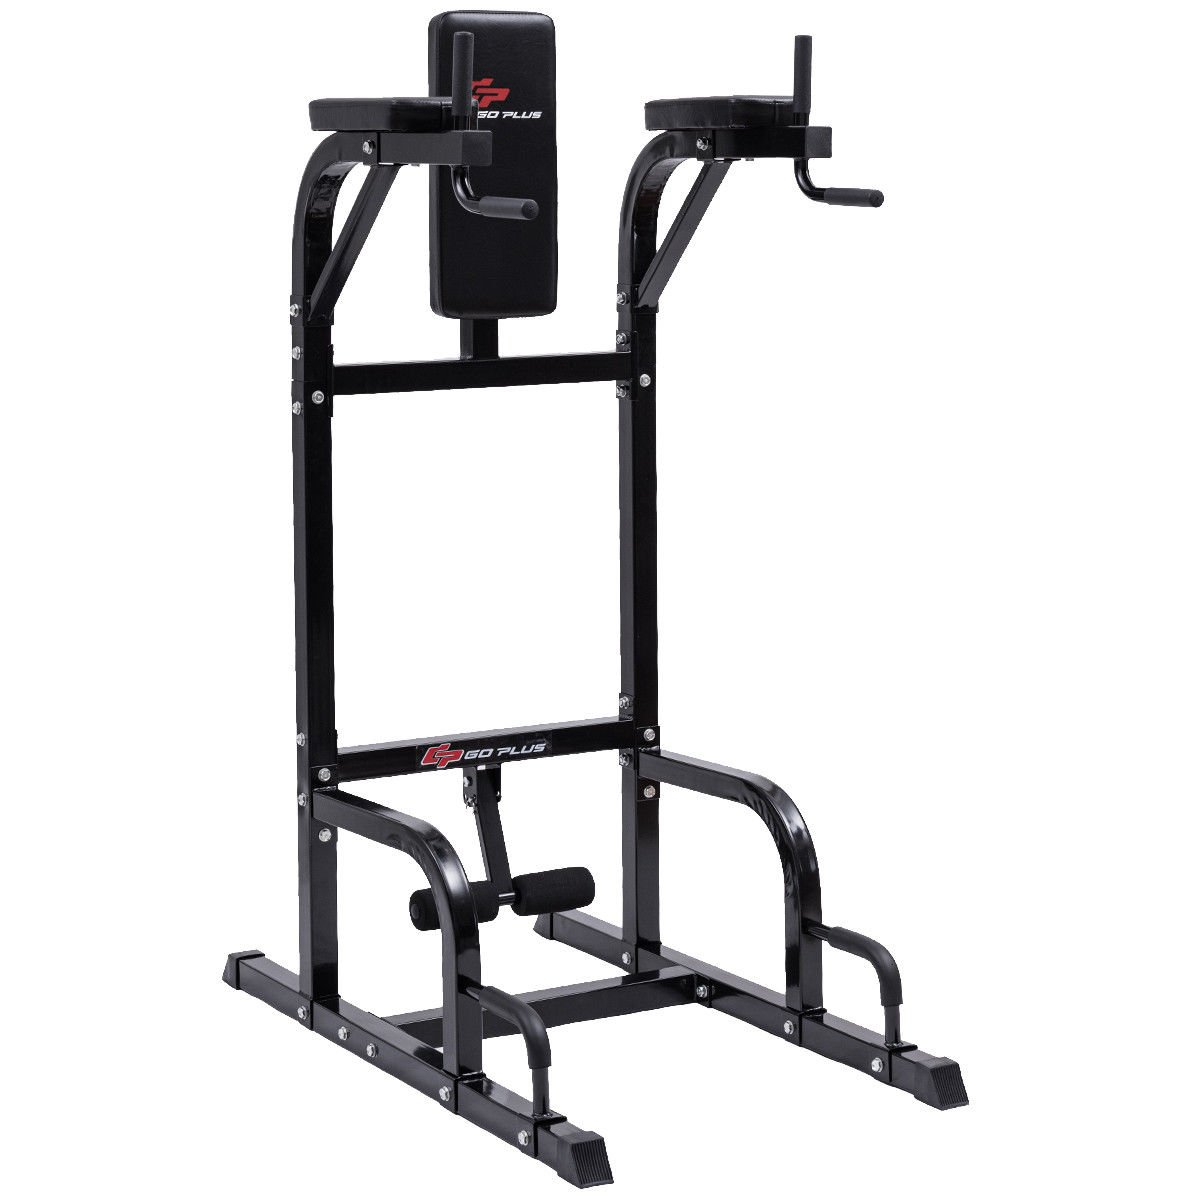 Amazon.com : Goplus Vertical Knee Raise VKR Multi-function Power Tower with  Dip Station Strength Training and Muscle Building for Home and Gym : Sports  & ...